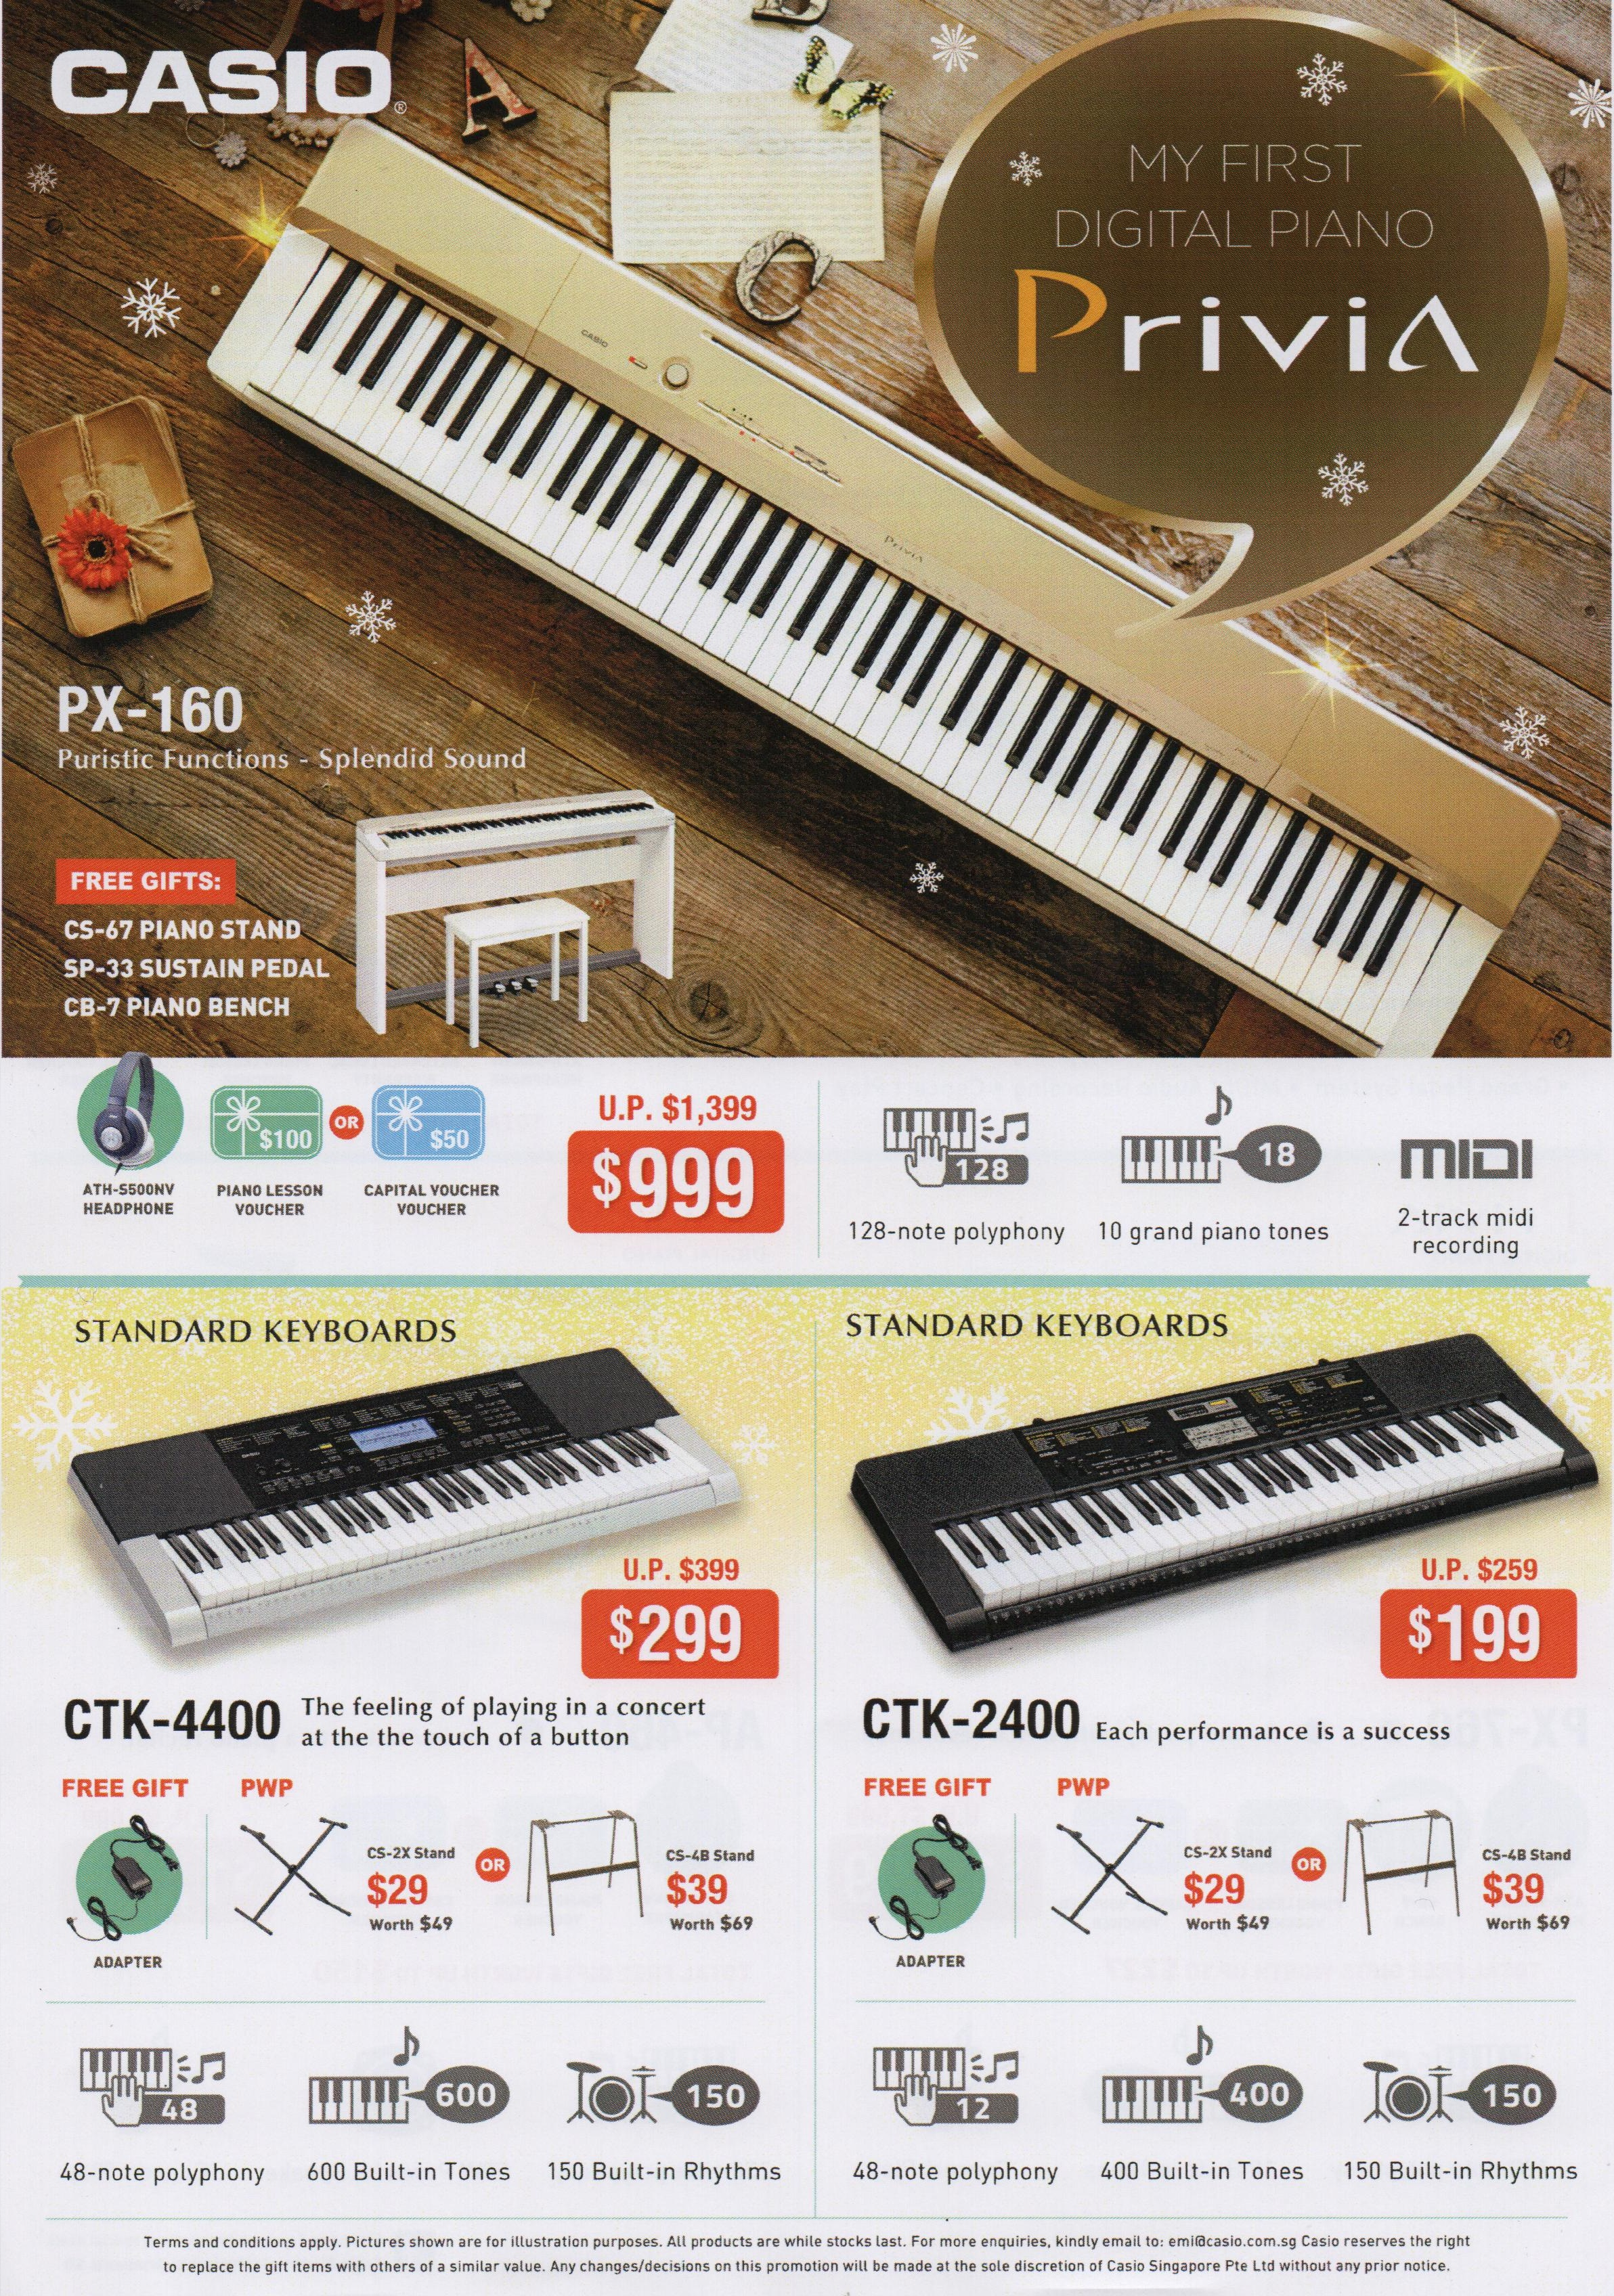 Casio Xmas 2016 Promotion